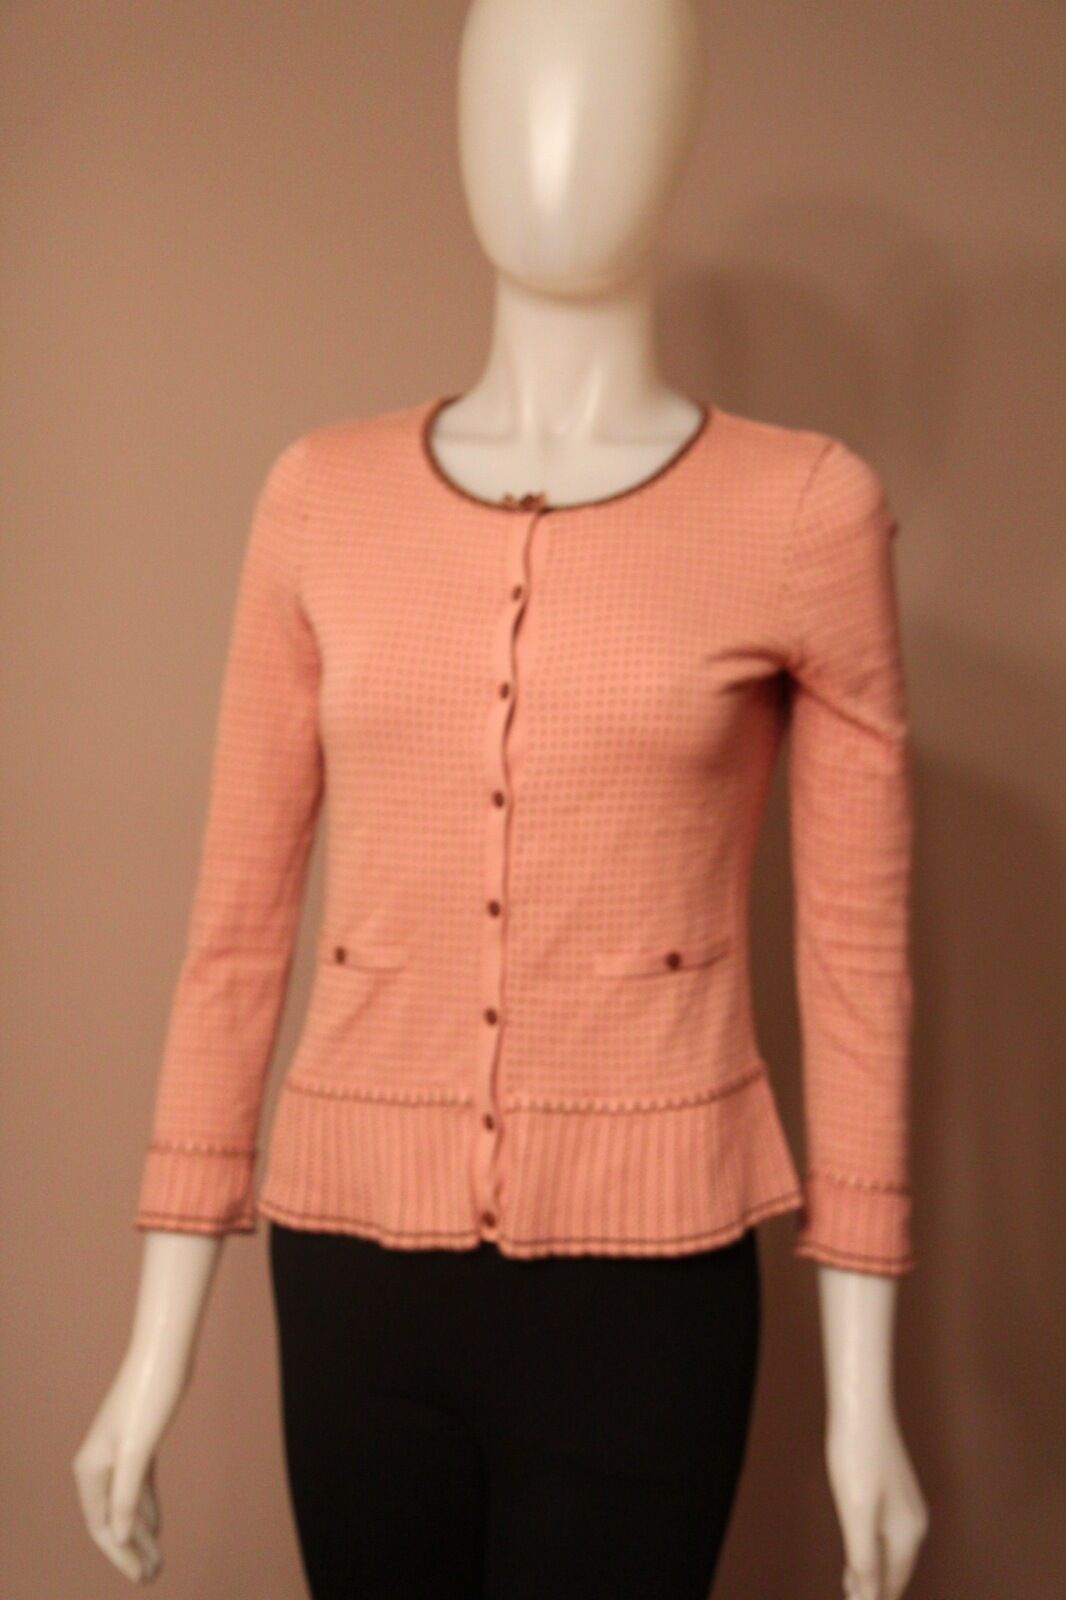 Marc Jacobs Pink Polka Dot Cardigan Sweater Small S